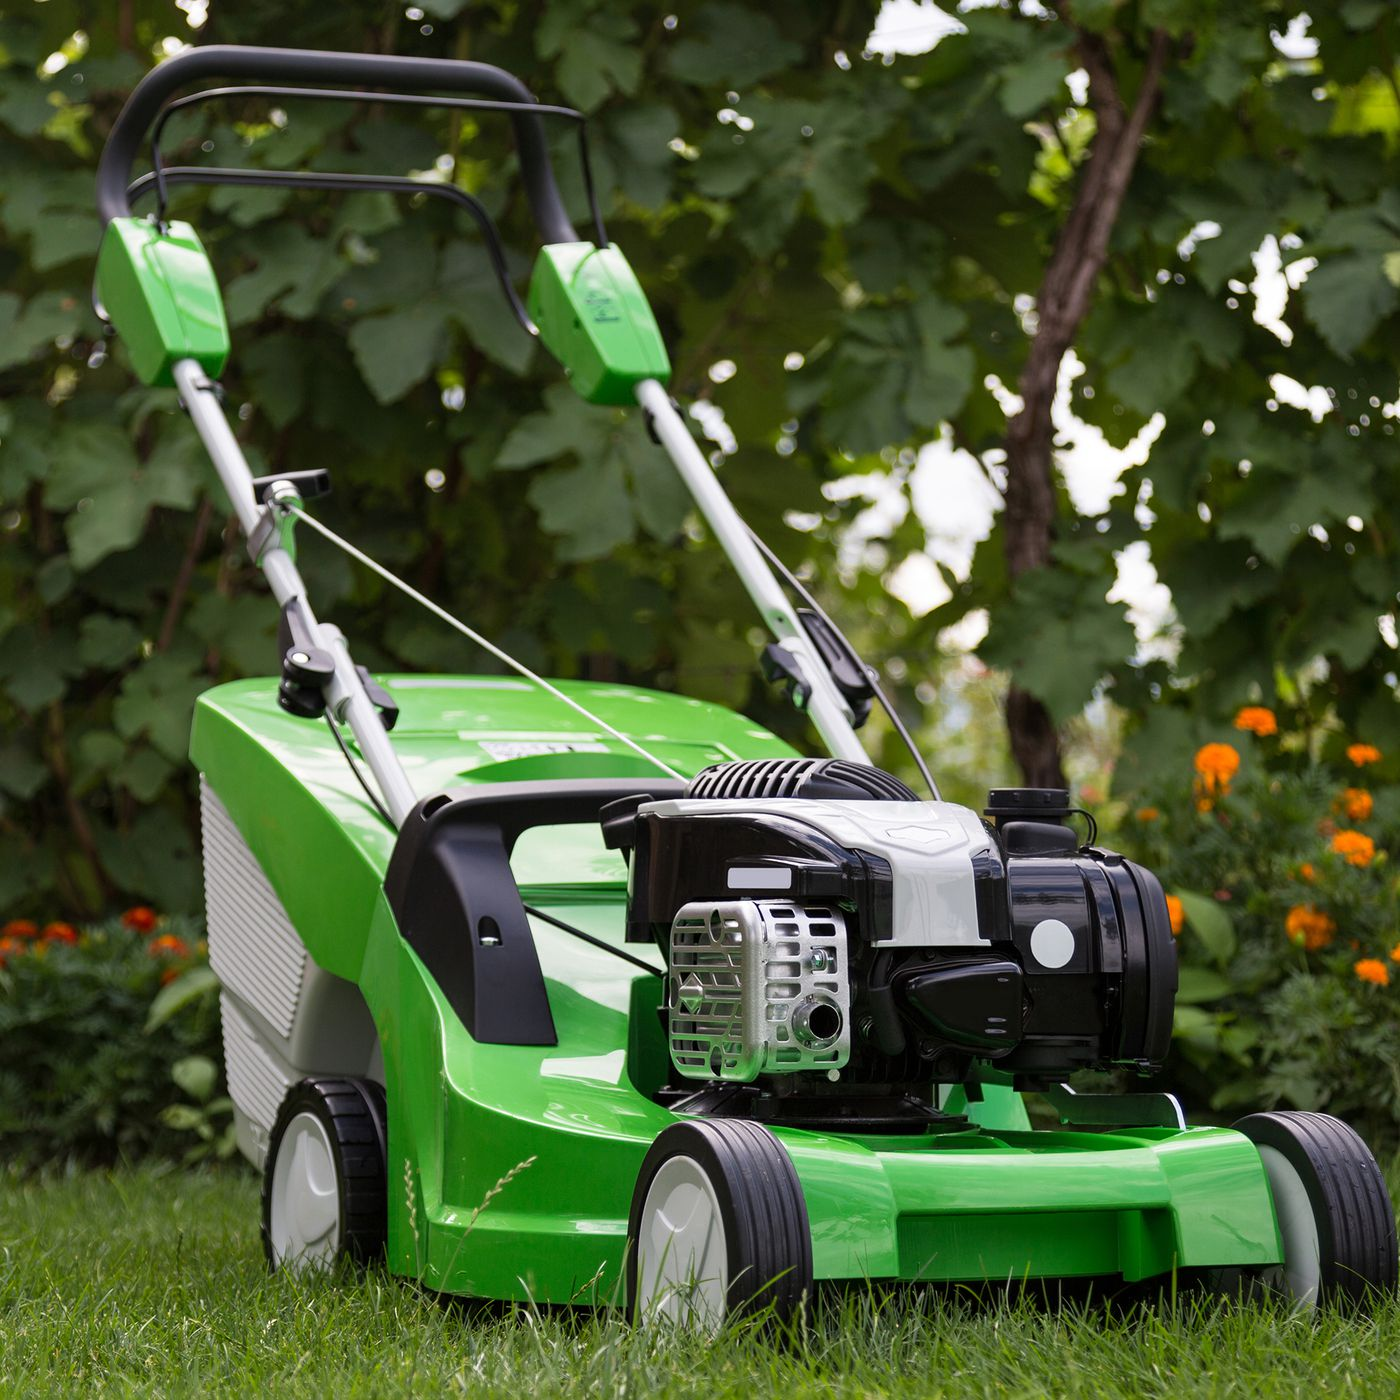 Winterize A Lawn Mower In 7 Steps This Old House